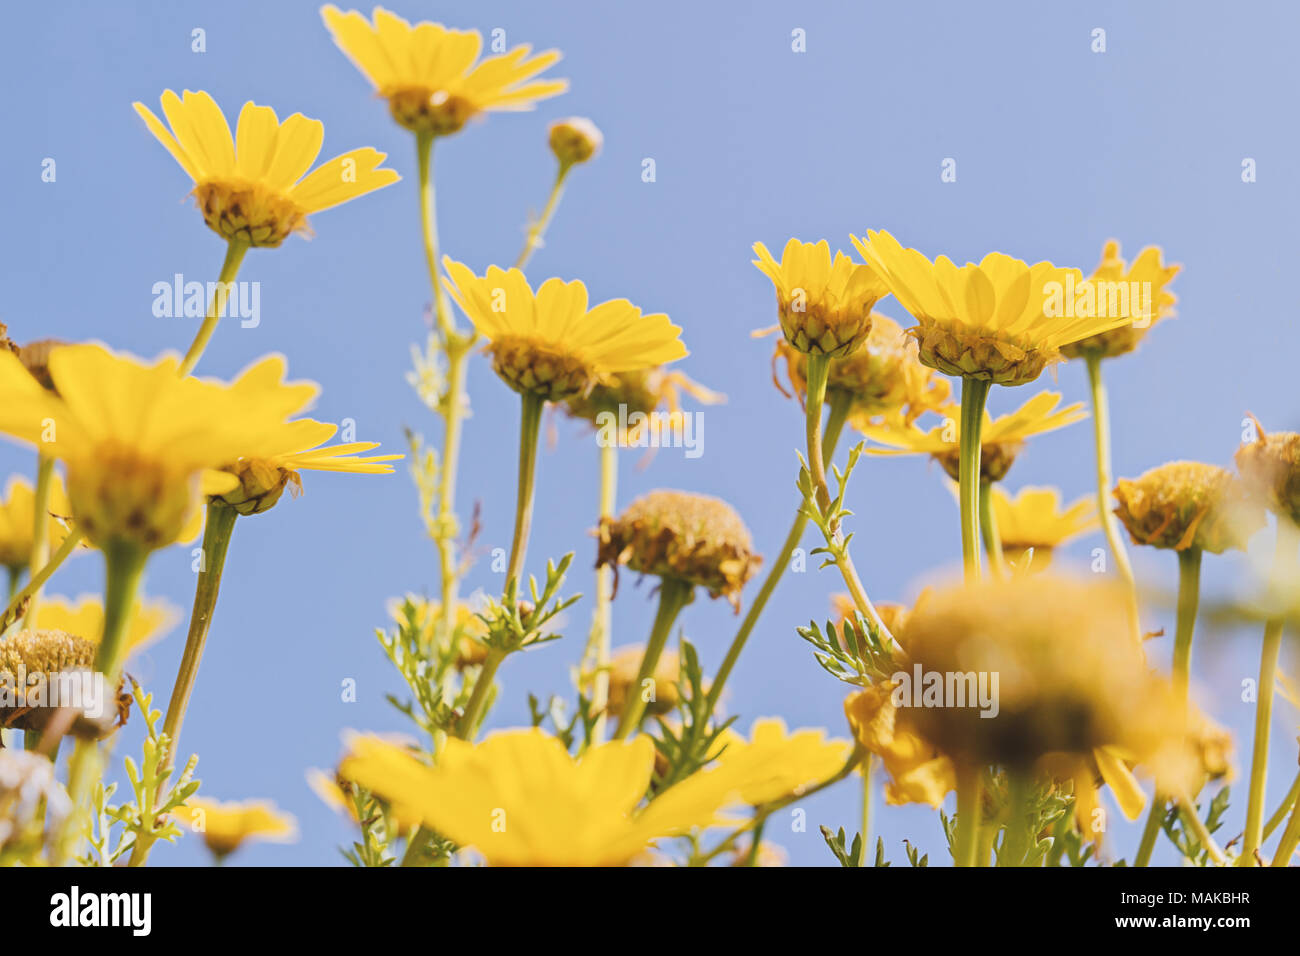 Close Up Low Angle View Of Motion Blurred Yellow Flowers On Blue Sky